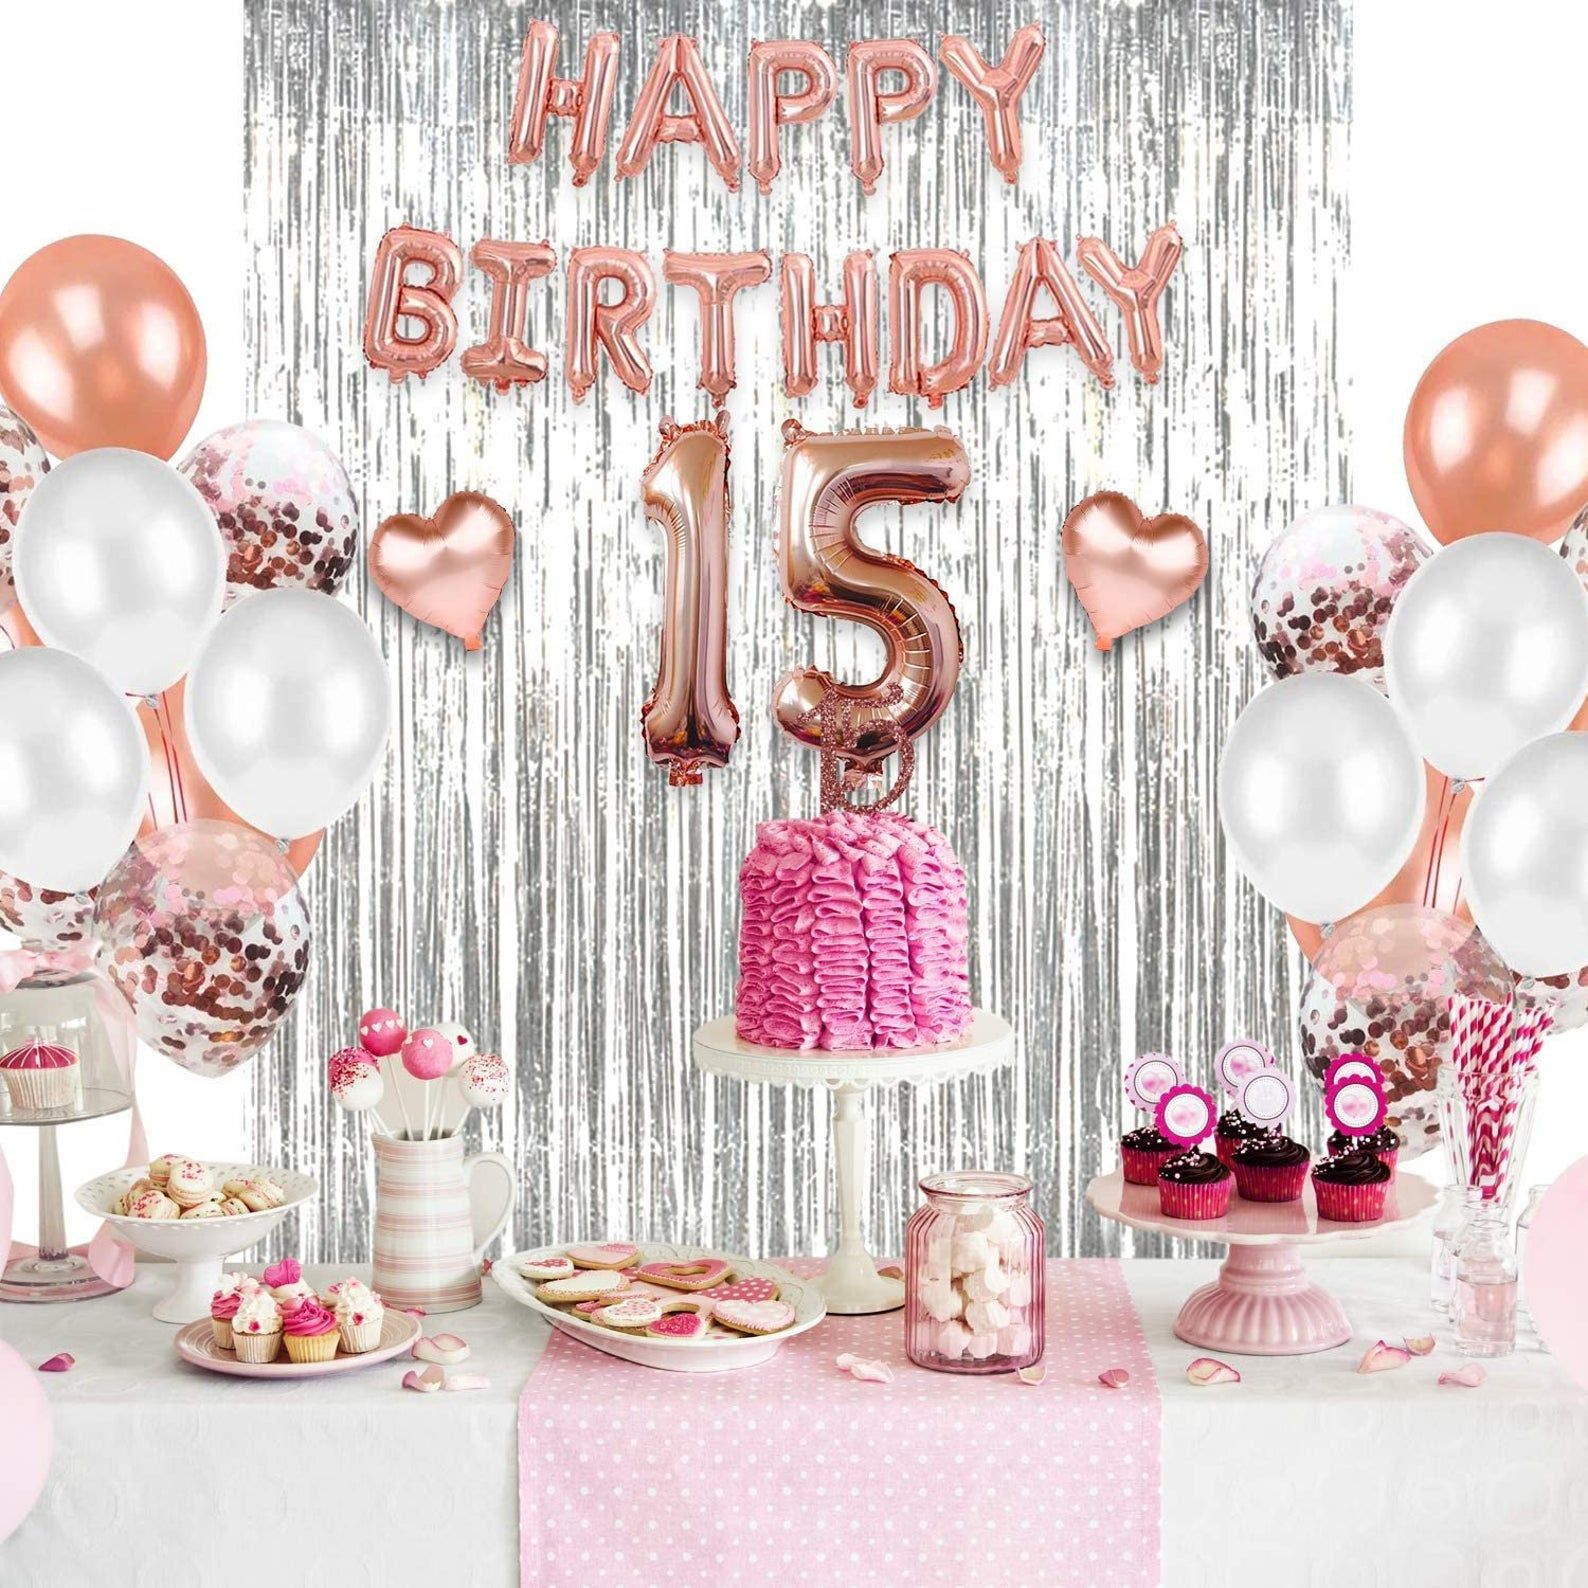 Sweet 15th Birthday Supplies Set And Decorations Includes 15th Birthday Tiara Sash Cake Topper Crown In 2021 15th Birthday Decorations 16th Birthday Decorations Girl Birthday Decorations